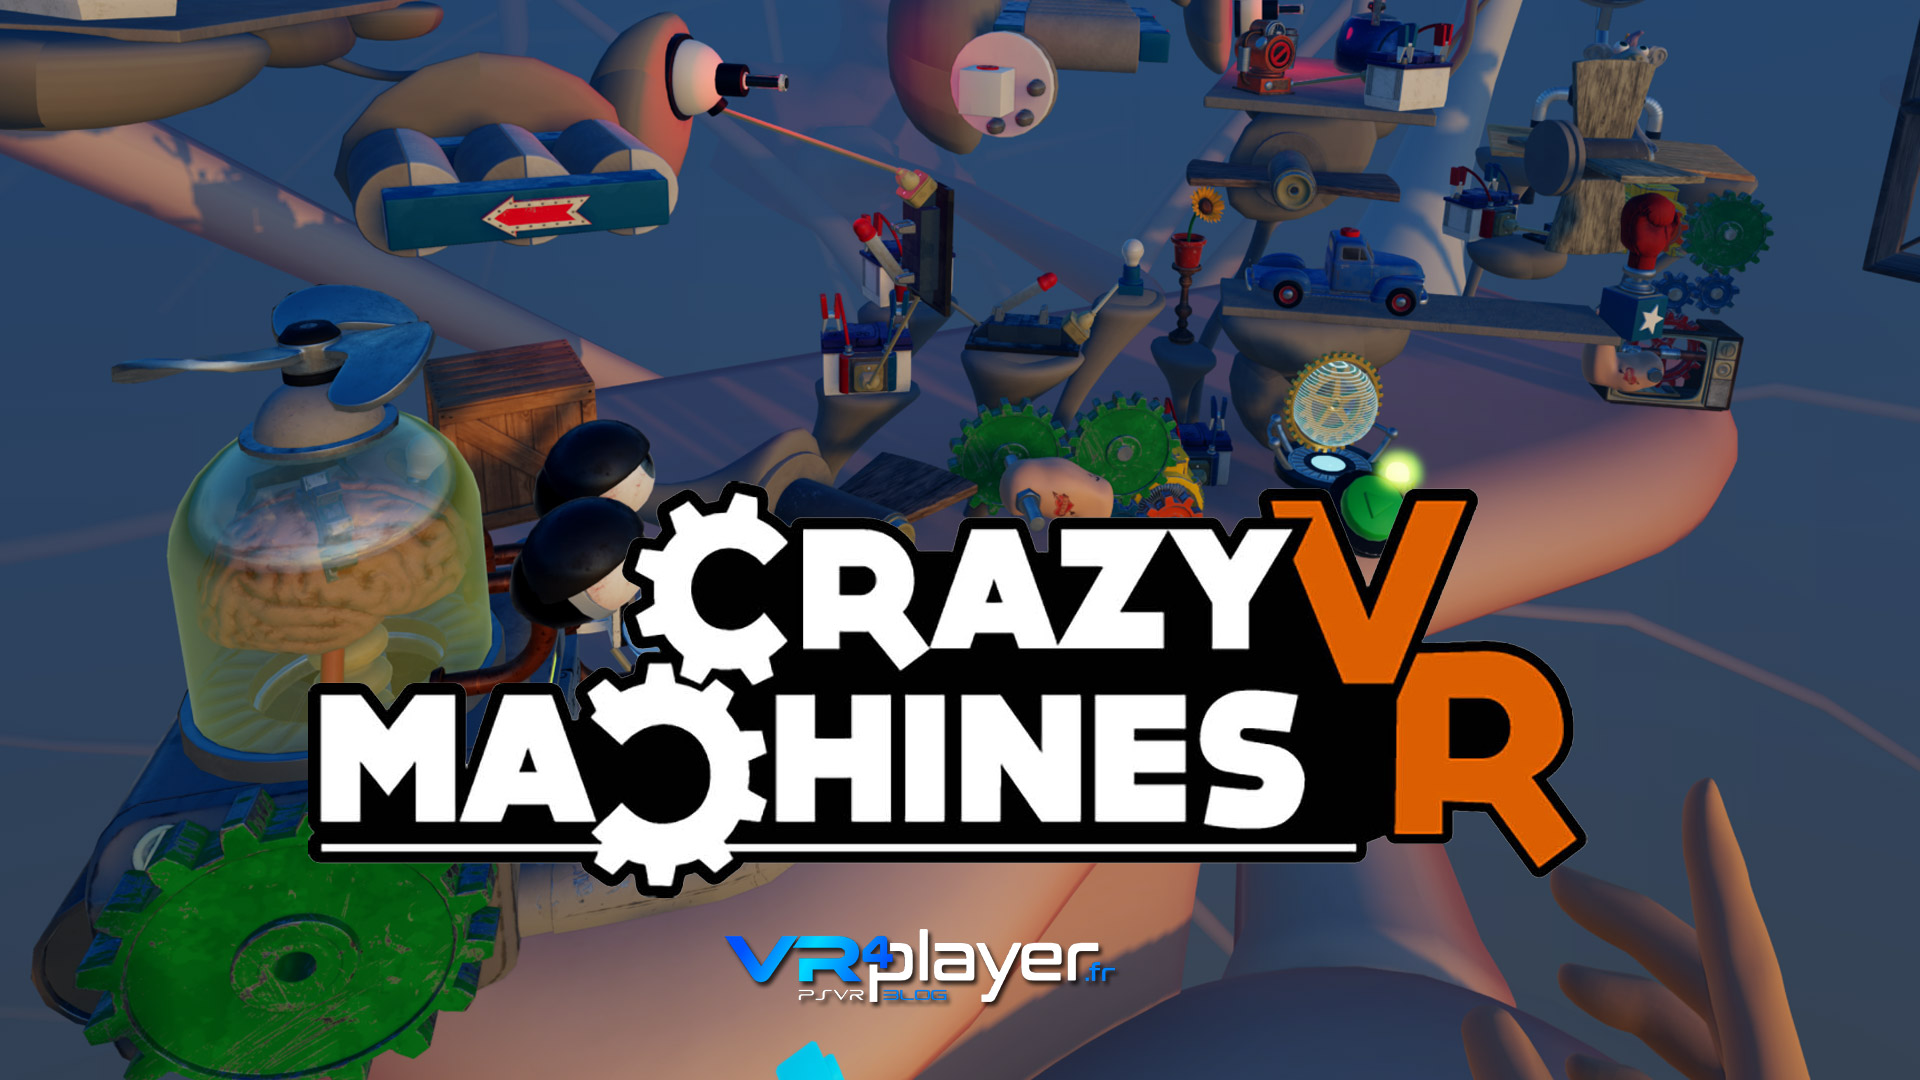 Crazy Machines VR sur PSVR en 2018 vrplayer.fr